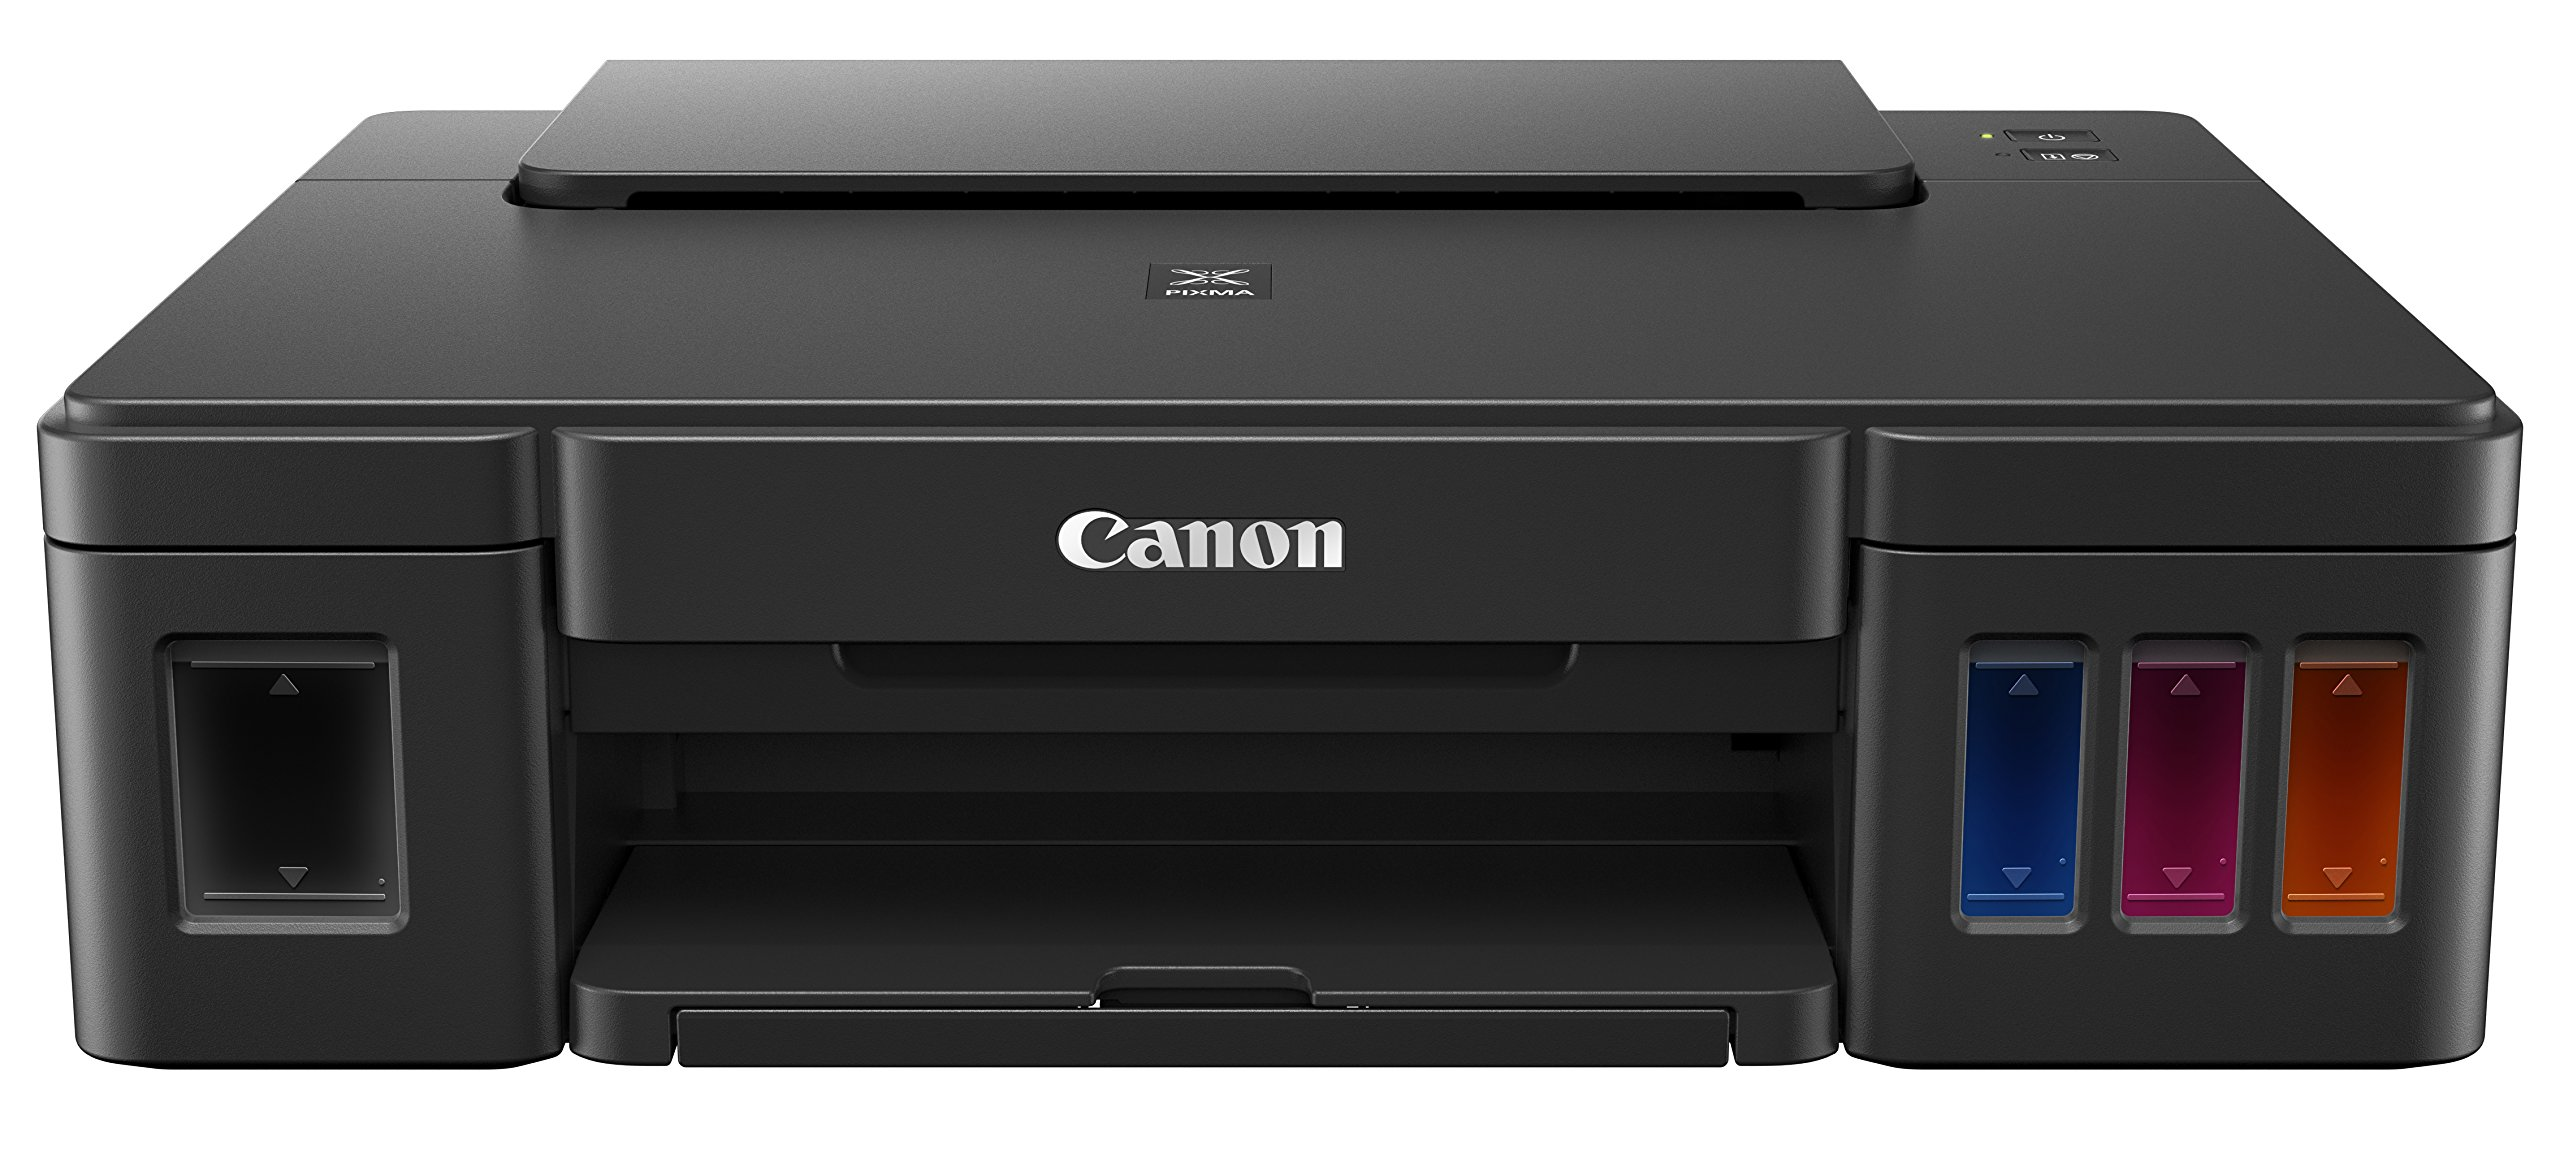 Canon PIXMA G1200 Megatank Single Function Printer, Print Only, Black by Canon (Image #3)